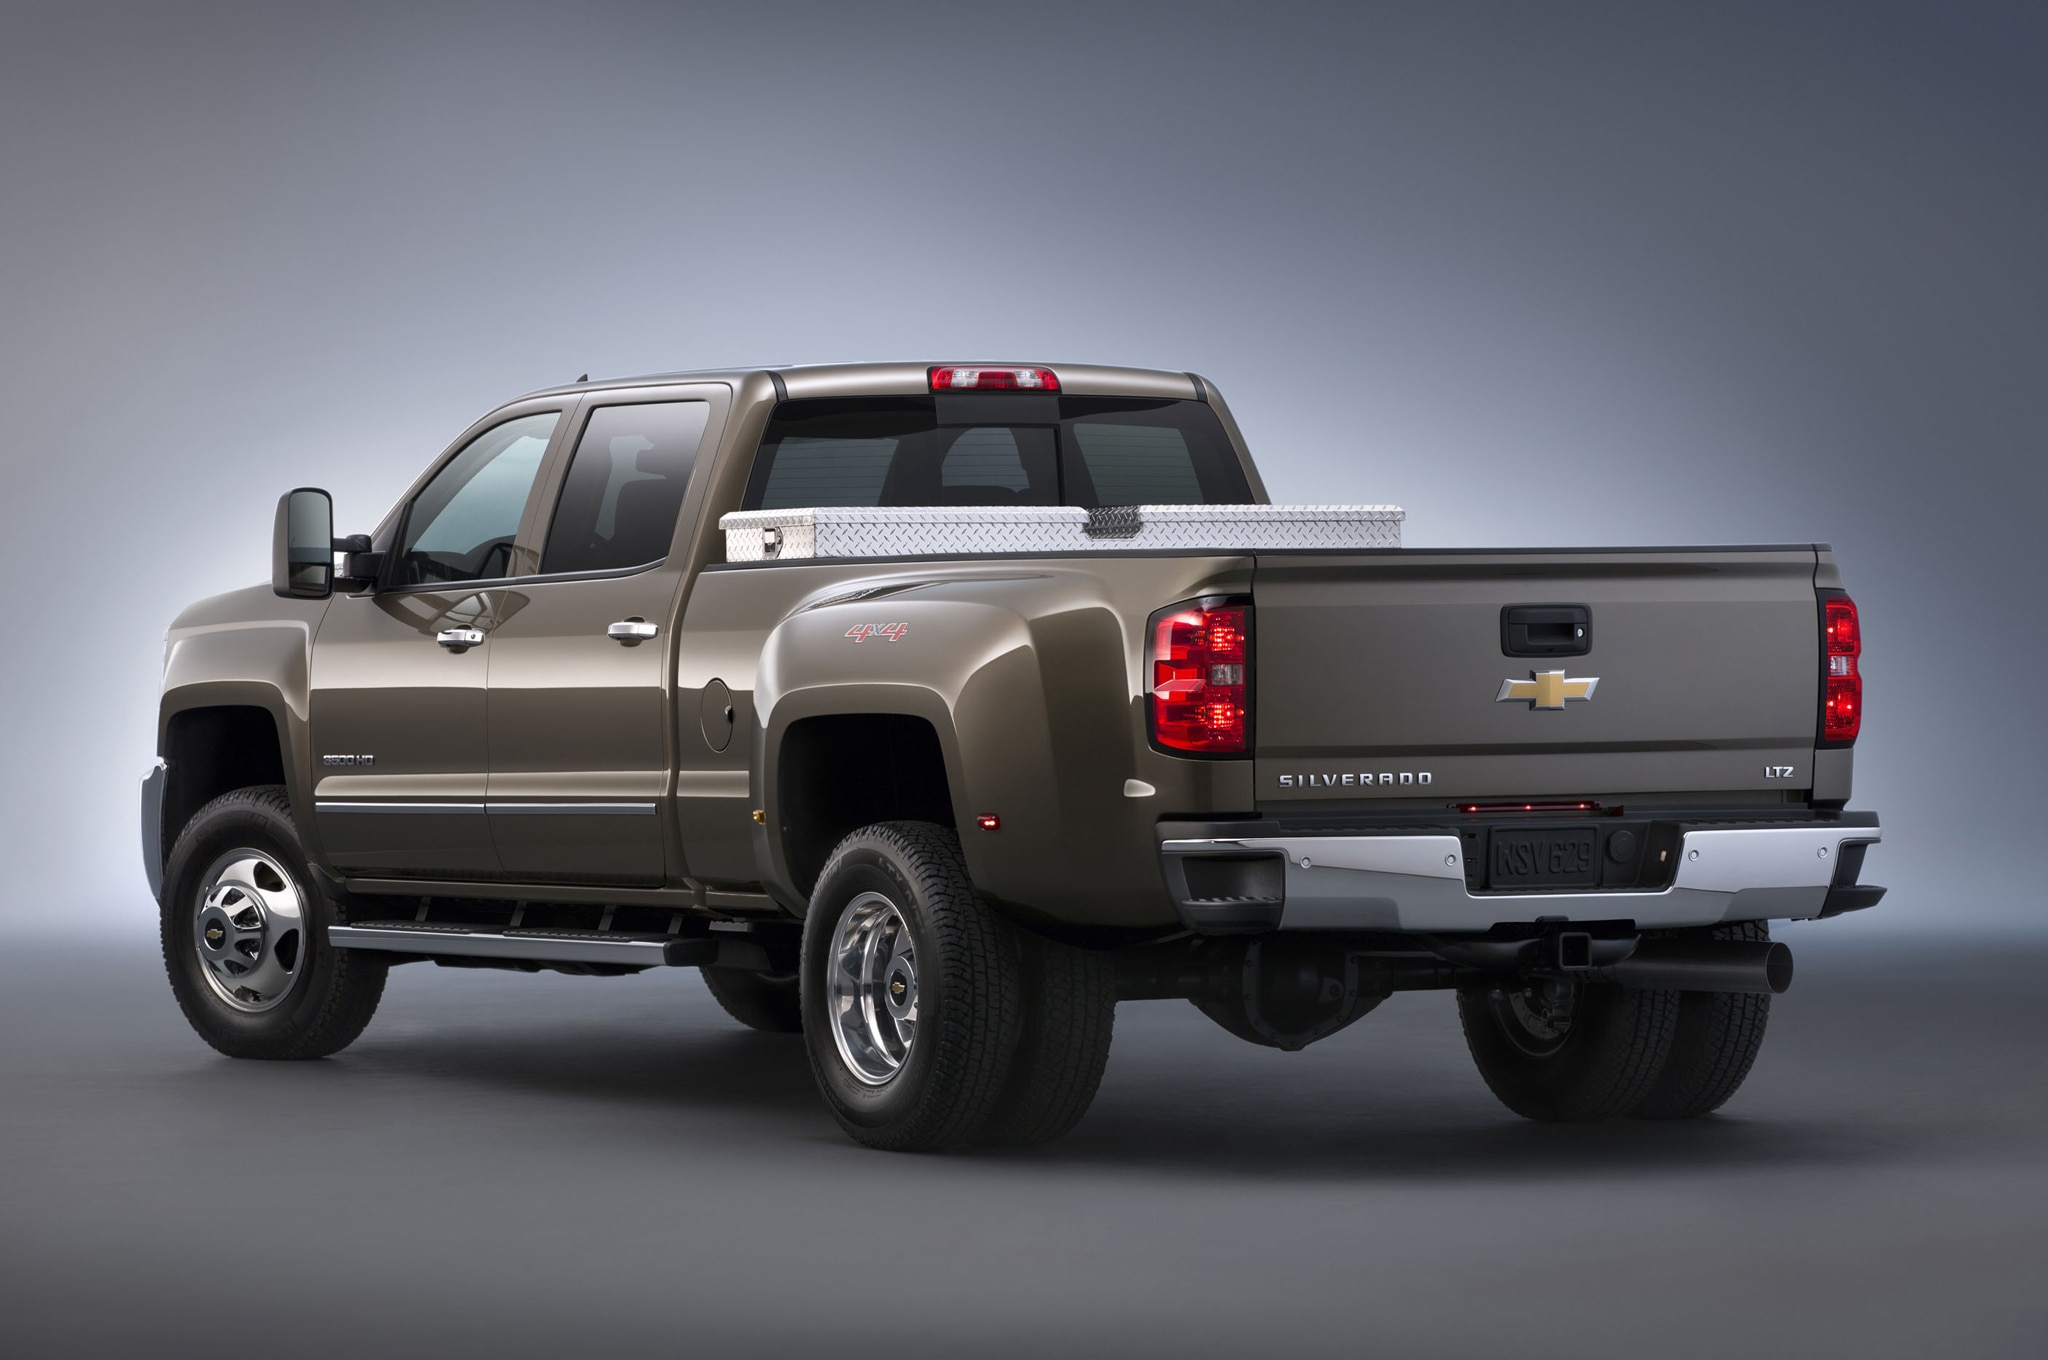 2015 Chevrolet Silverado 3500HD rear view